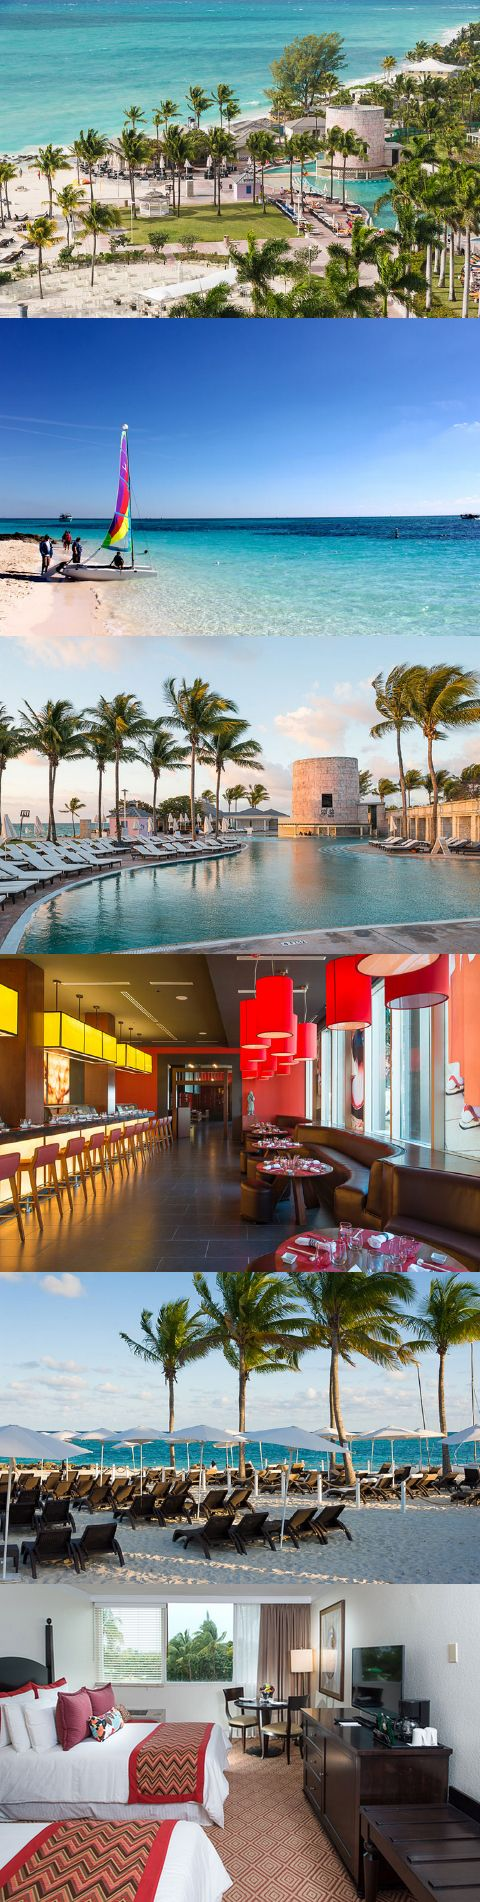 So... this rarely happens:  ✭✭✭✭✭ Memories Grand Bahama Beach and Casino hotel in Freeport Bahamas on SALE for $595 + 385 taxes!!  All-inclusive, 7 days, Deluxe Island Room. Toronto departures September 14th, 20th or 27th.   Booking must be made by August 26, 2014 on our website:  Select 'Packages' 'Toronto - Bahamas' 'Hotel' 'Departure Date'   Book here: http://www.mosaictour.net/